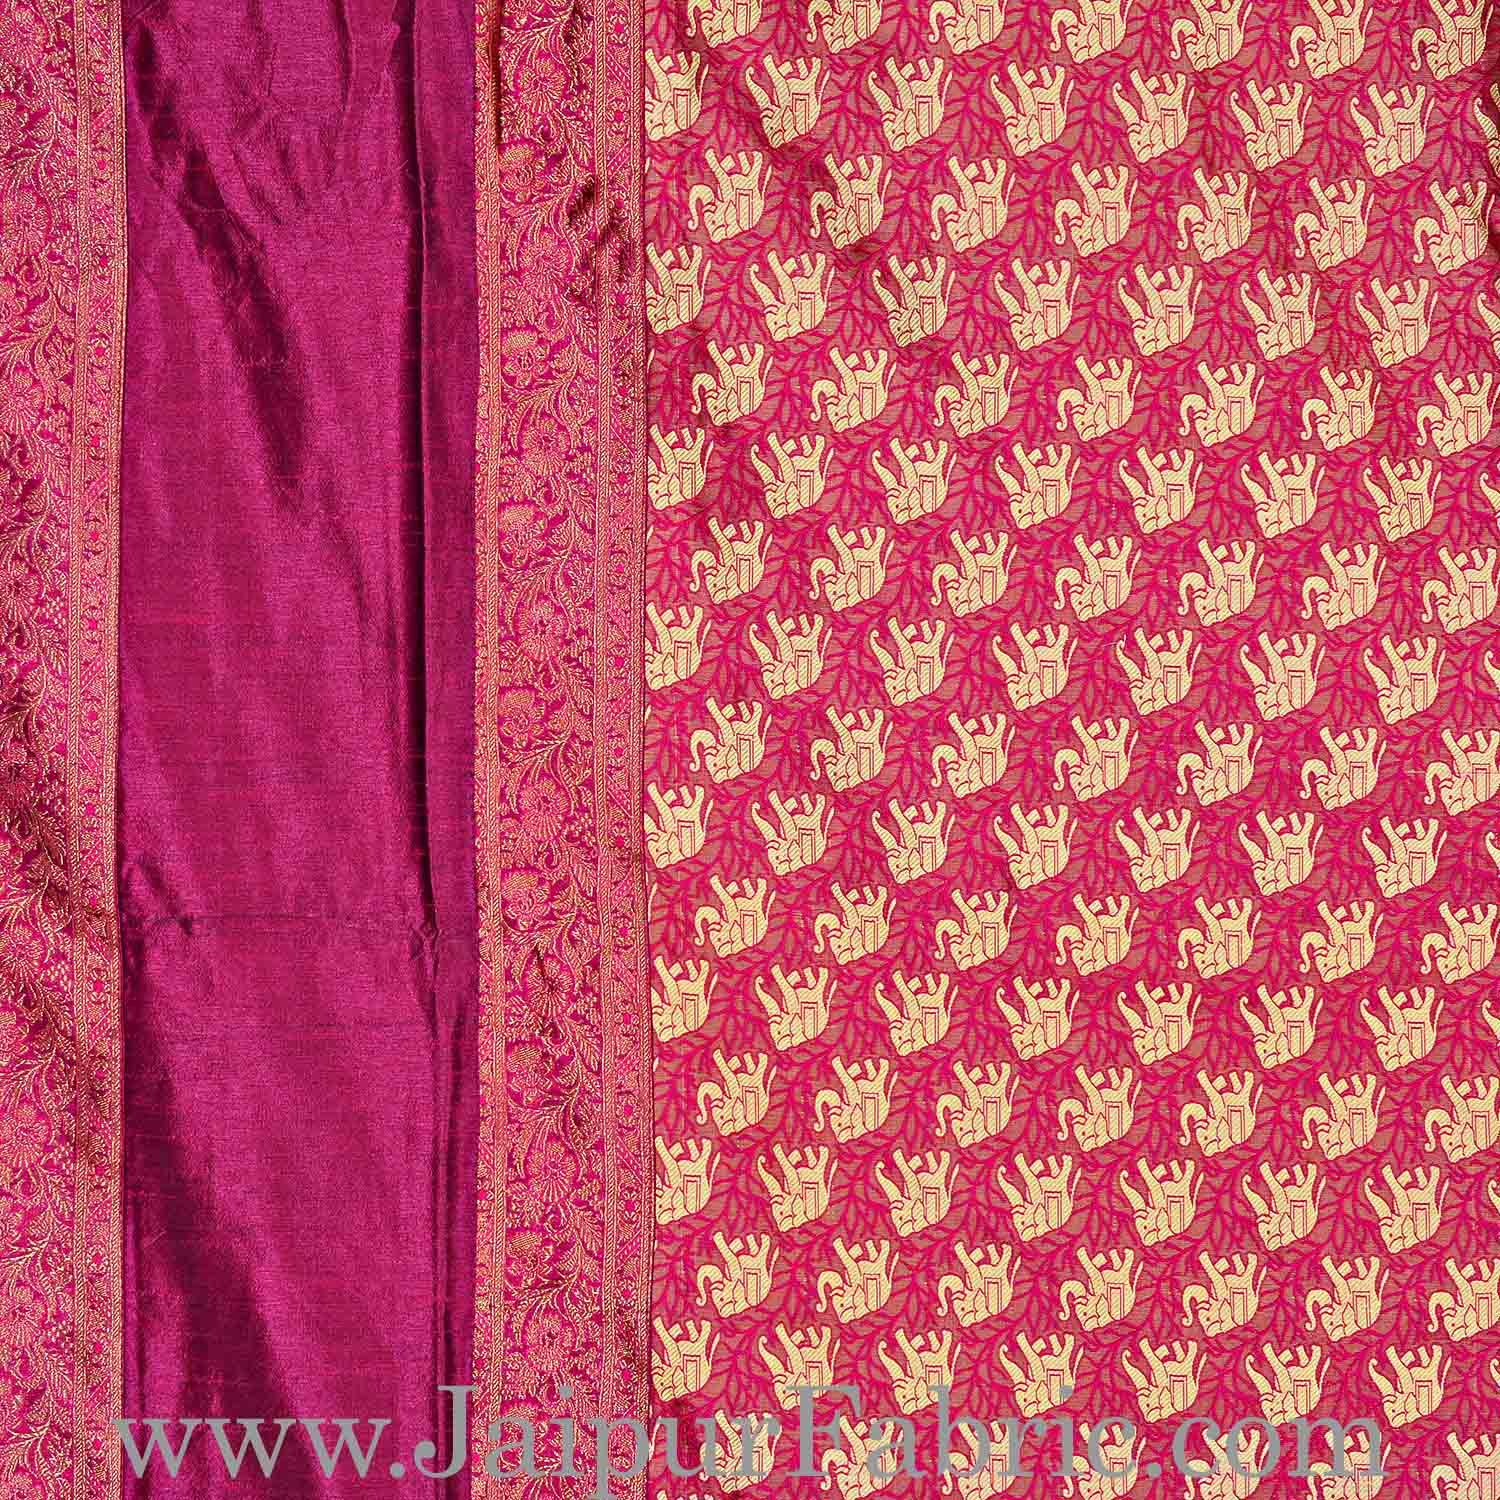 Maroon Rajasthani Zari Embroidered Lace Work Silk Double Bed Sheet